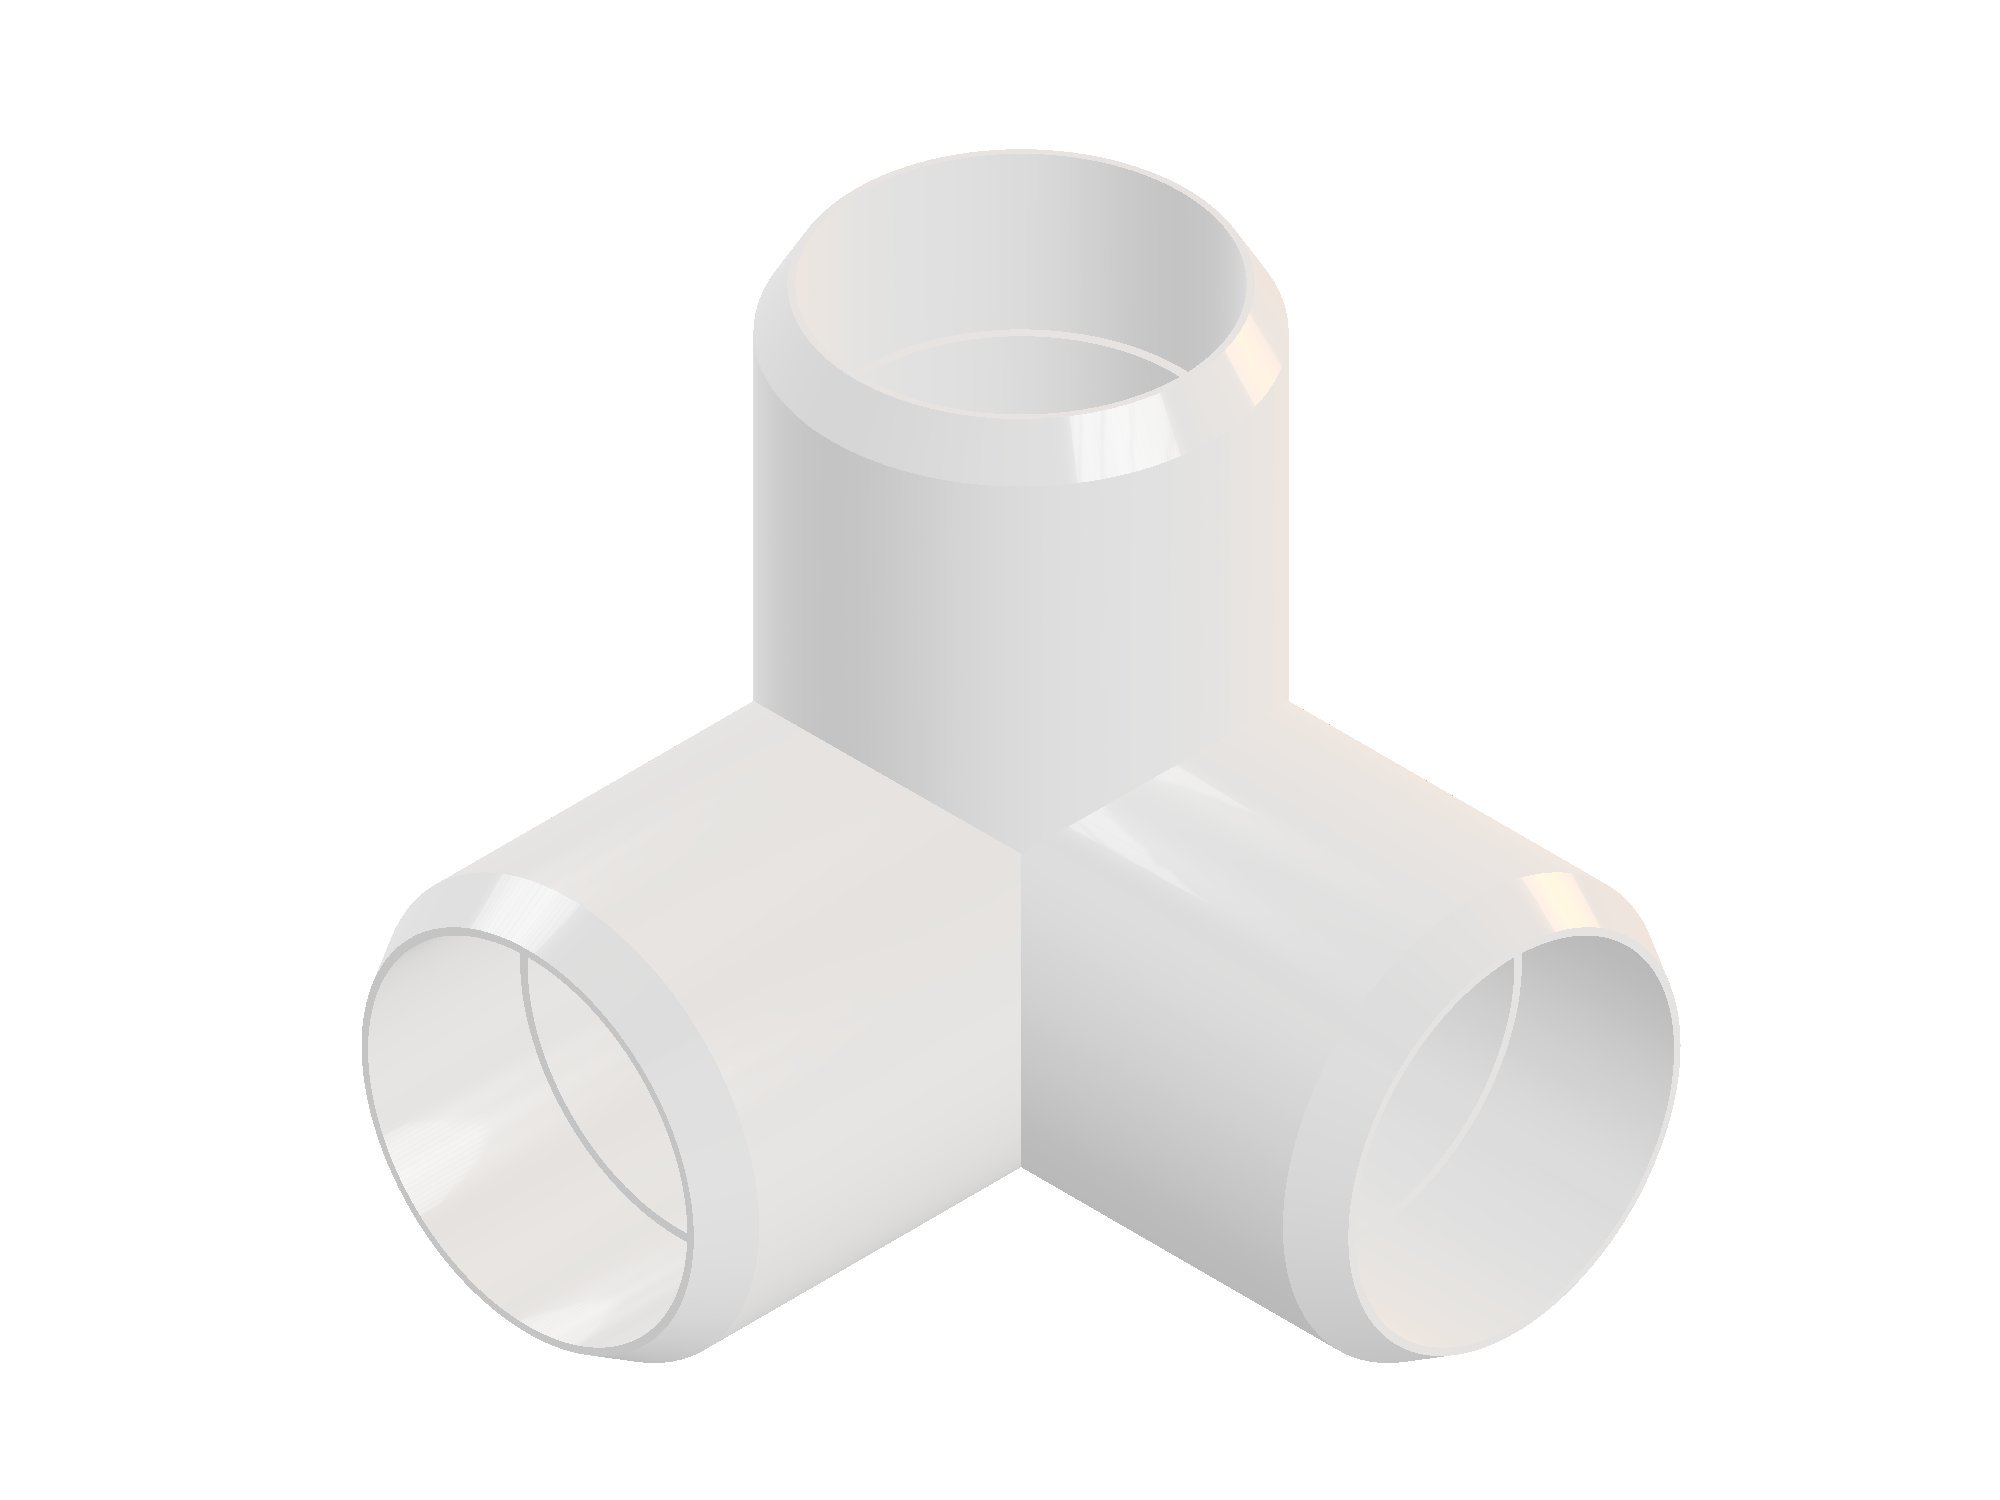 PVC Elbow Corner Side Outlet Tee Fitting, Furniture Grade 3way 1 1/4inch, White [Pack of 5] (3way 1 1/4inch)